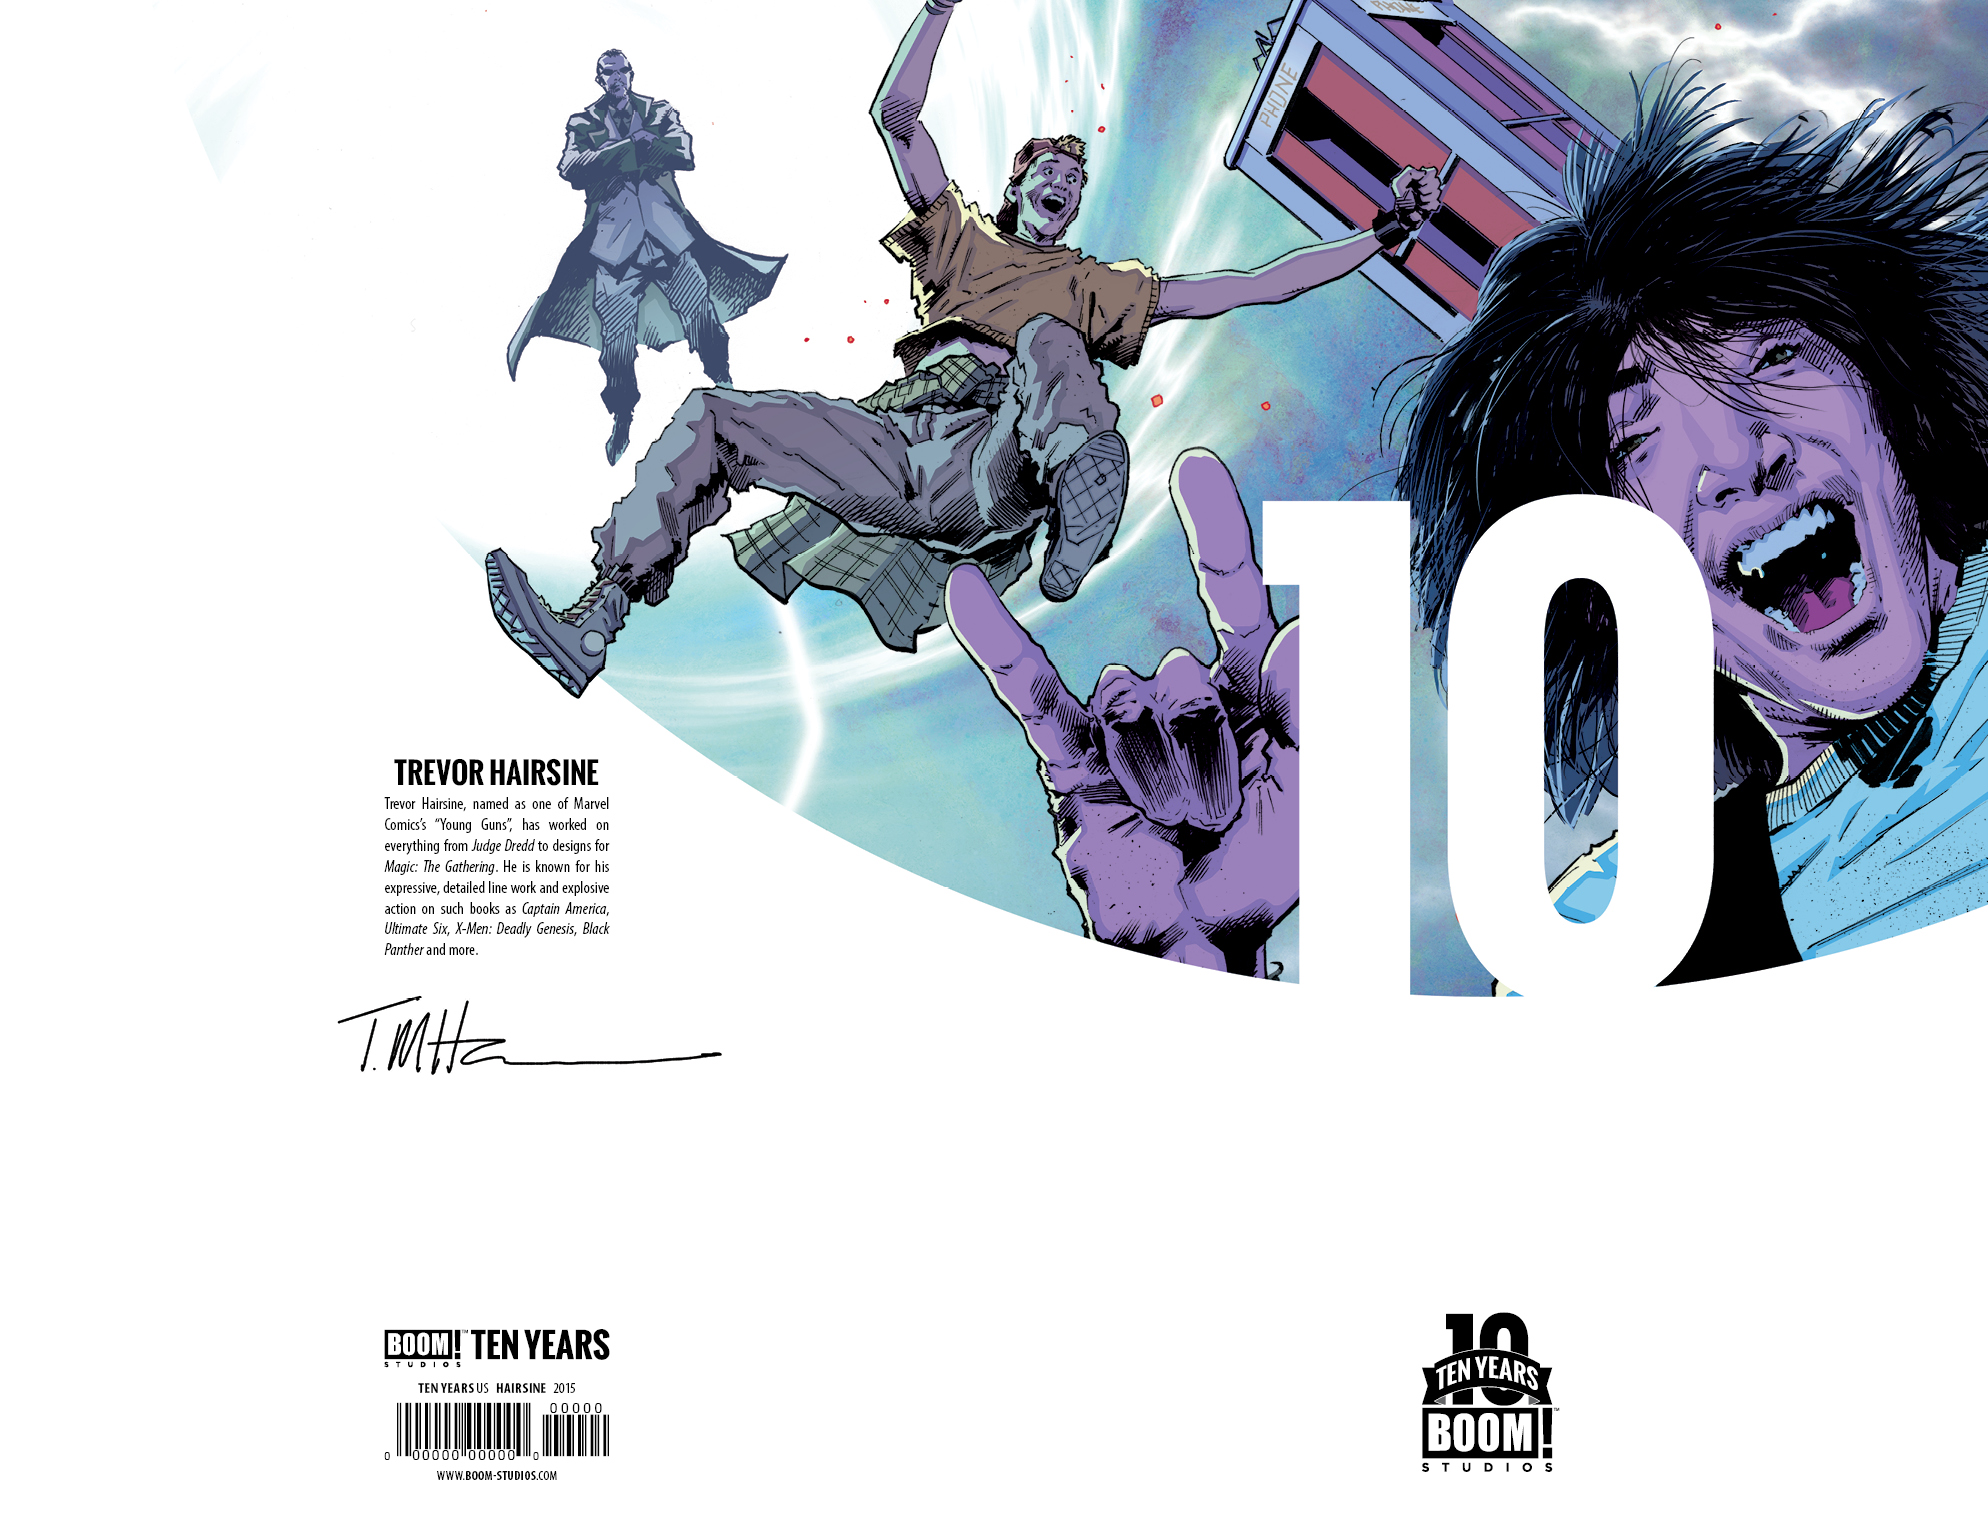 Bill & Ted's Most Triumphant Return #1 10 Years Incentive Cover by Trevor Hairsine